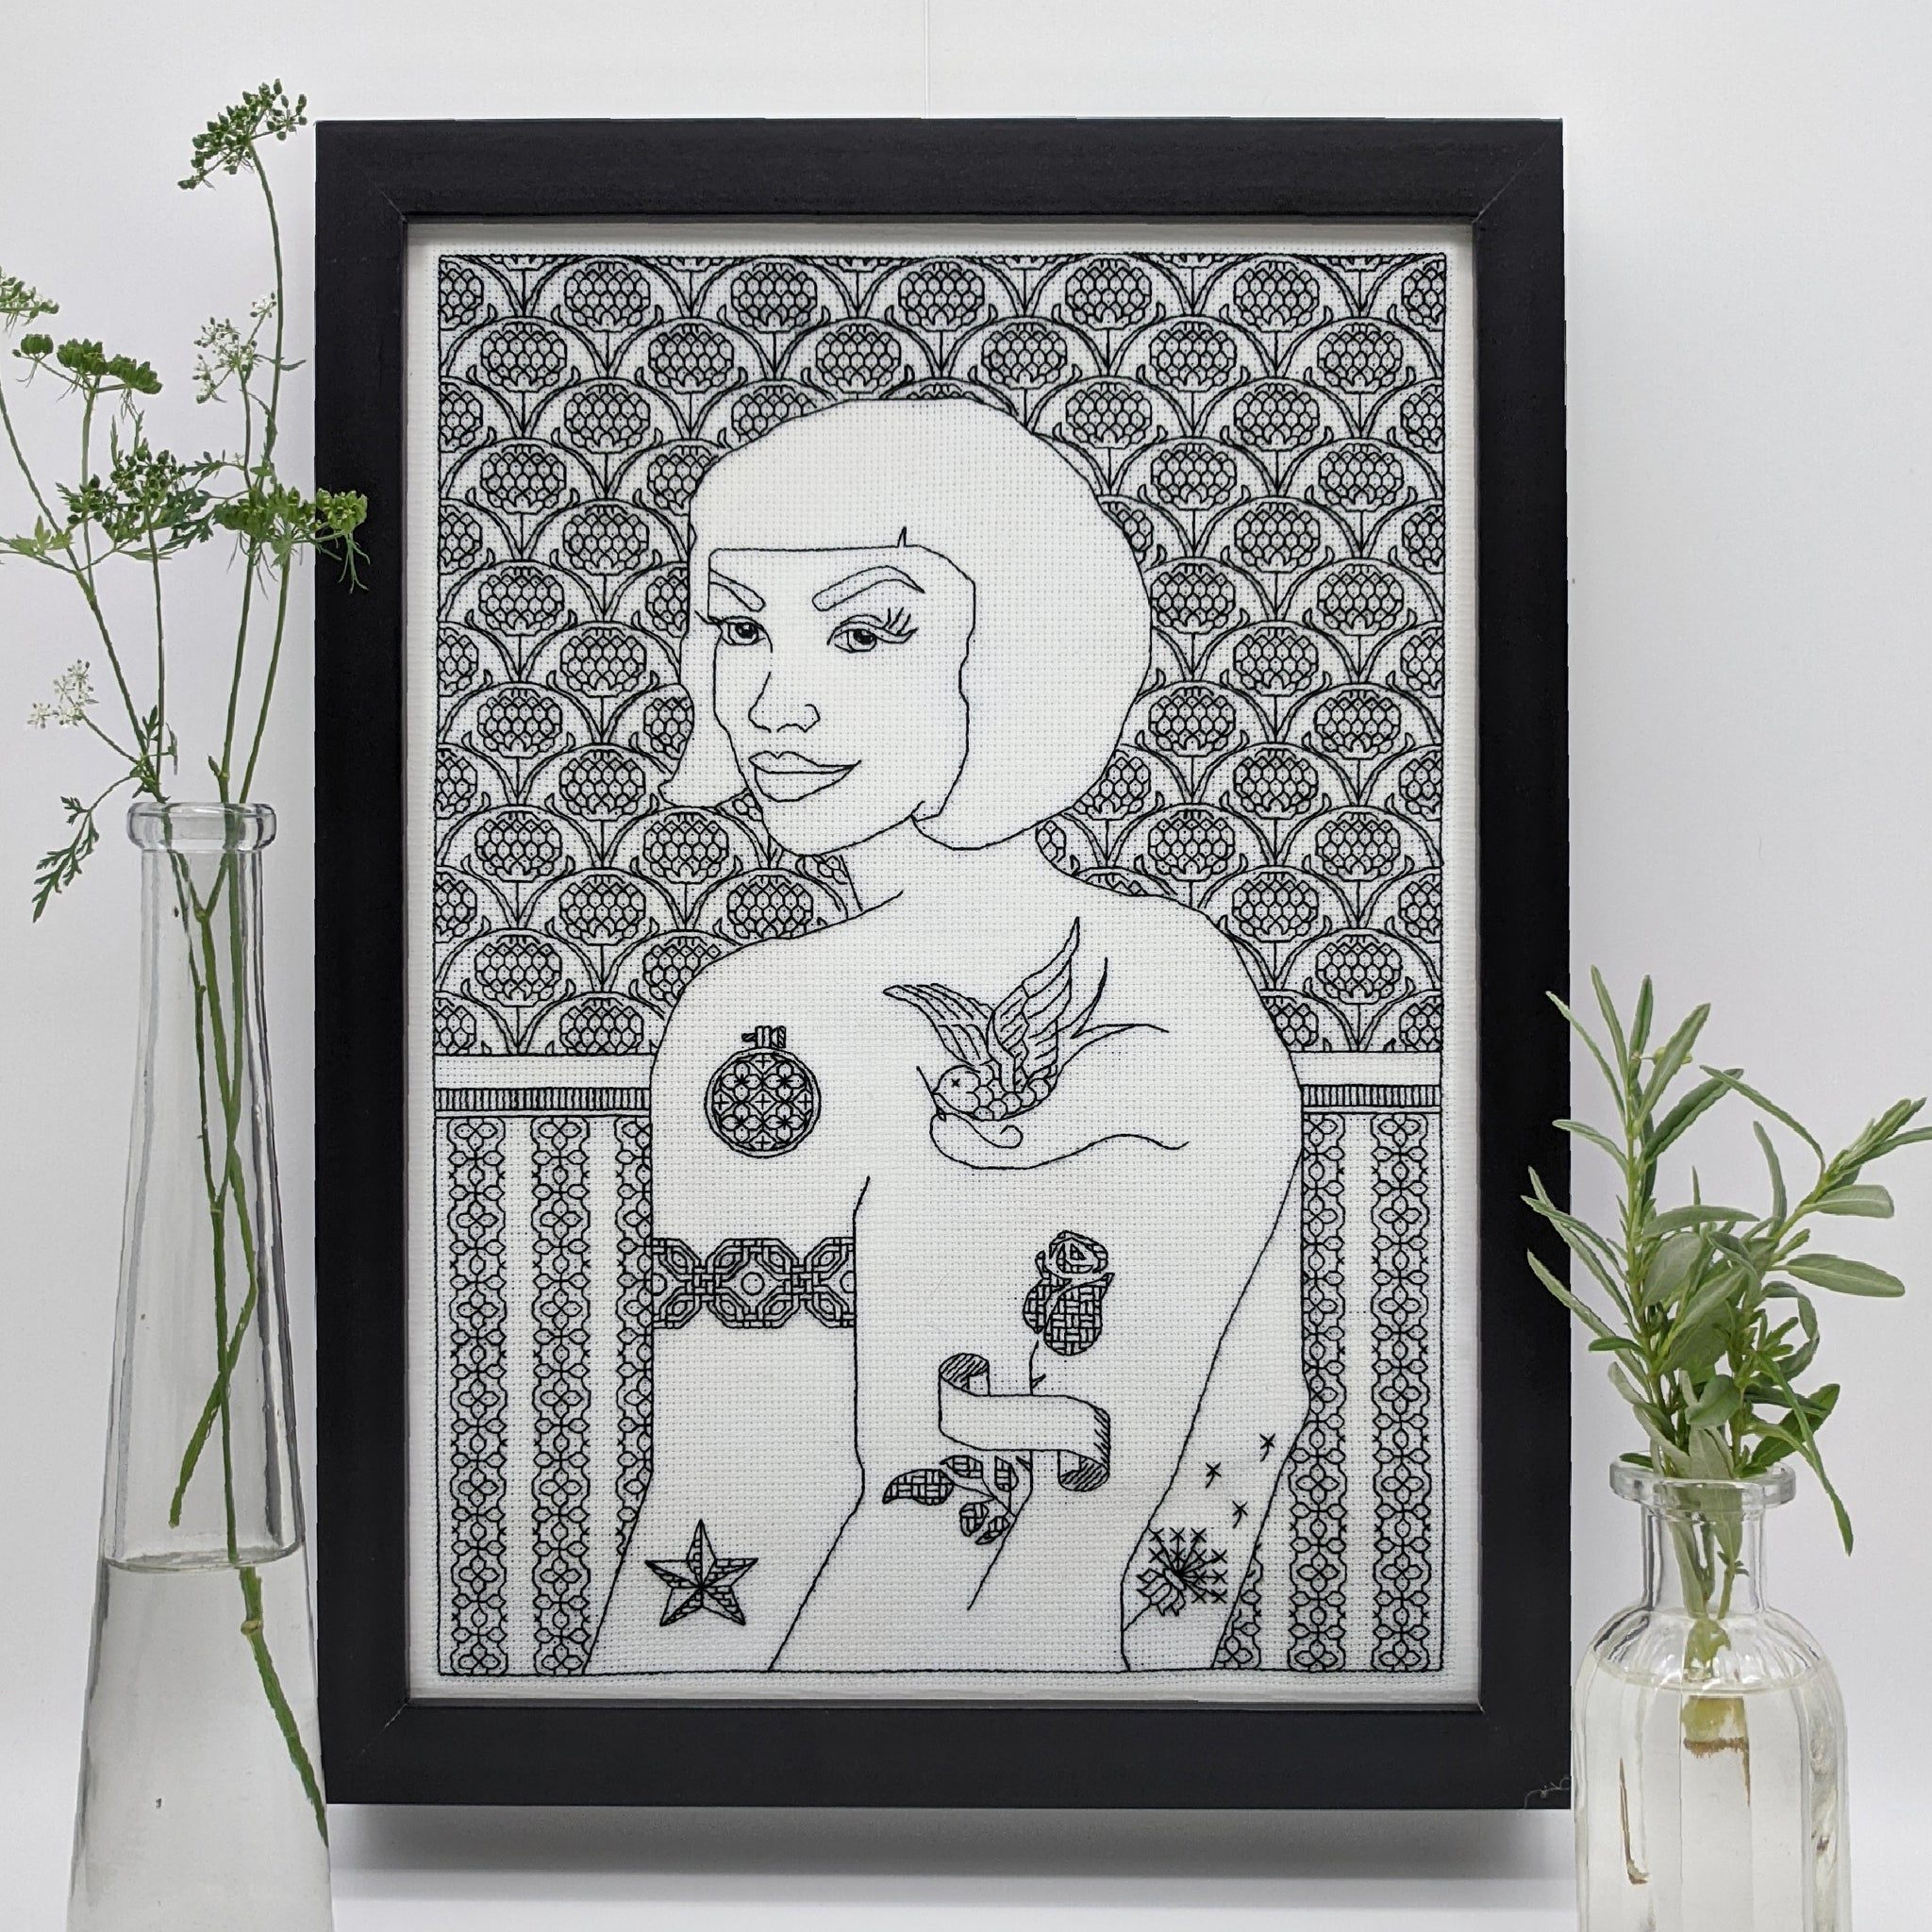 Blackwork embroidery tattooed woman